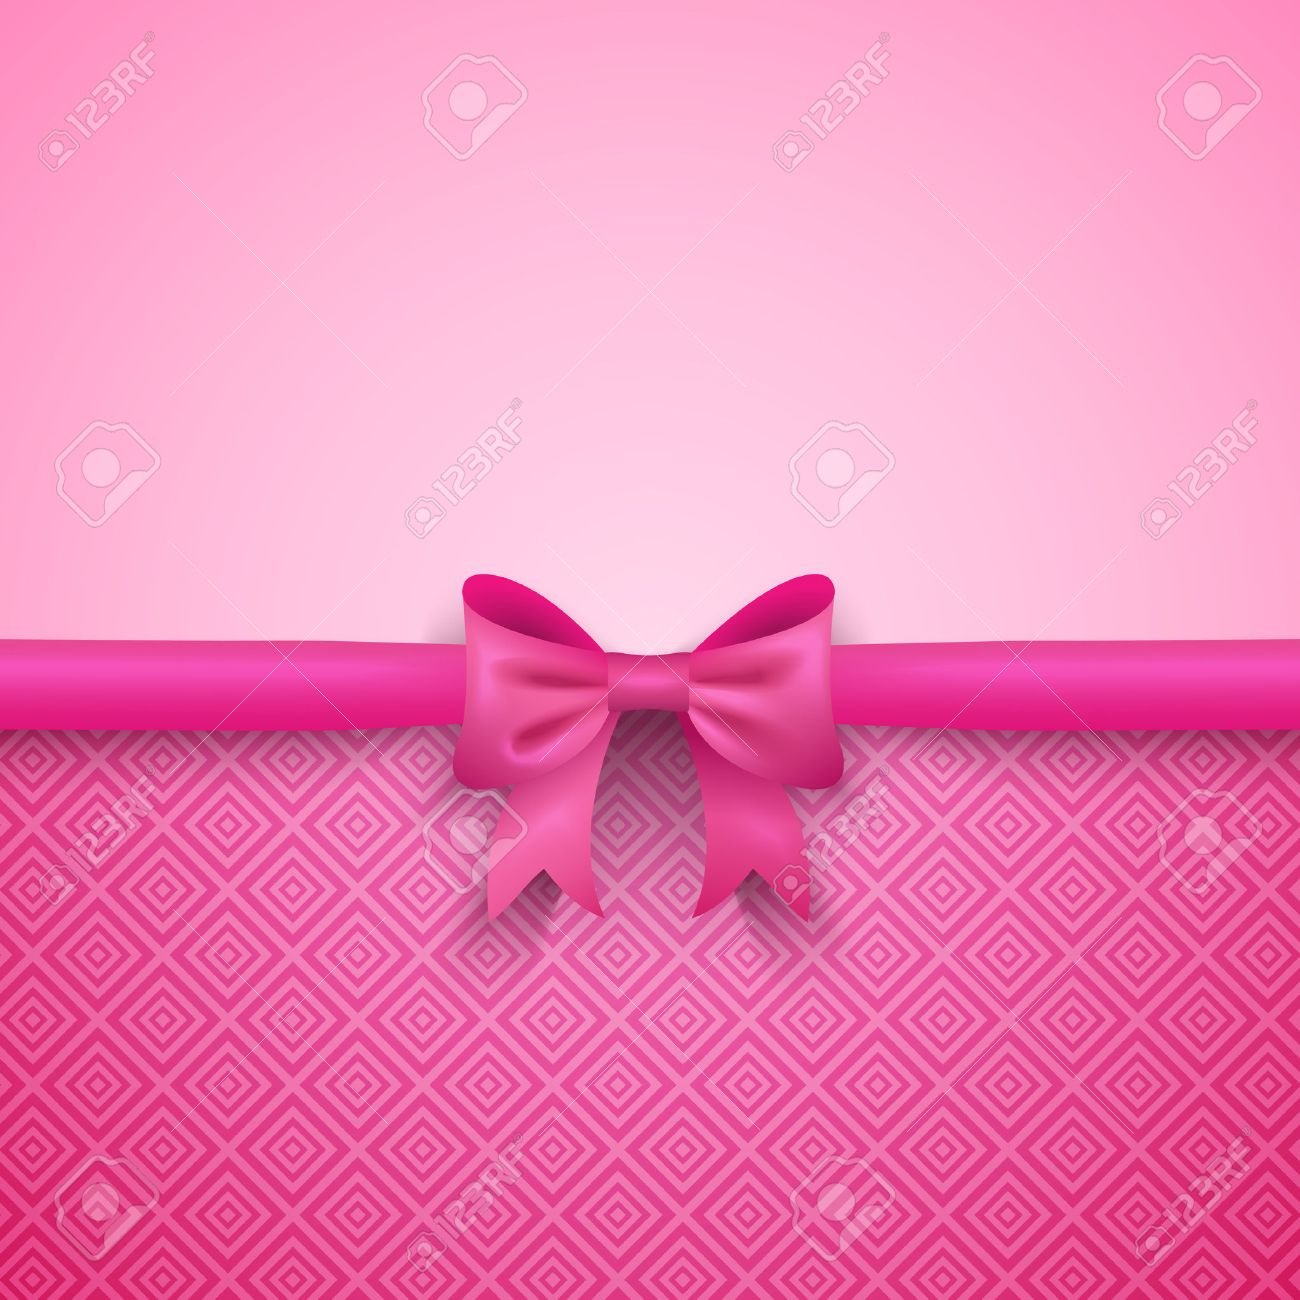 Romantic vector pink background with cute bow and pattern pretty romantic vector pink background with cute bow and pattern pretty design greeting card wallpaper m4hsunfo